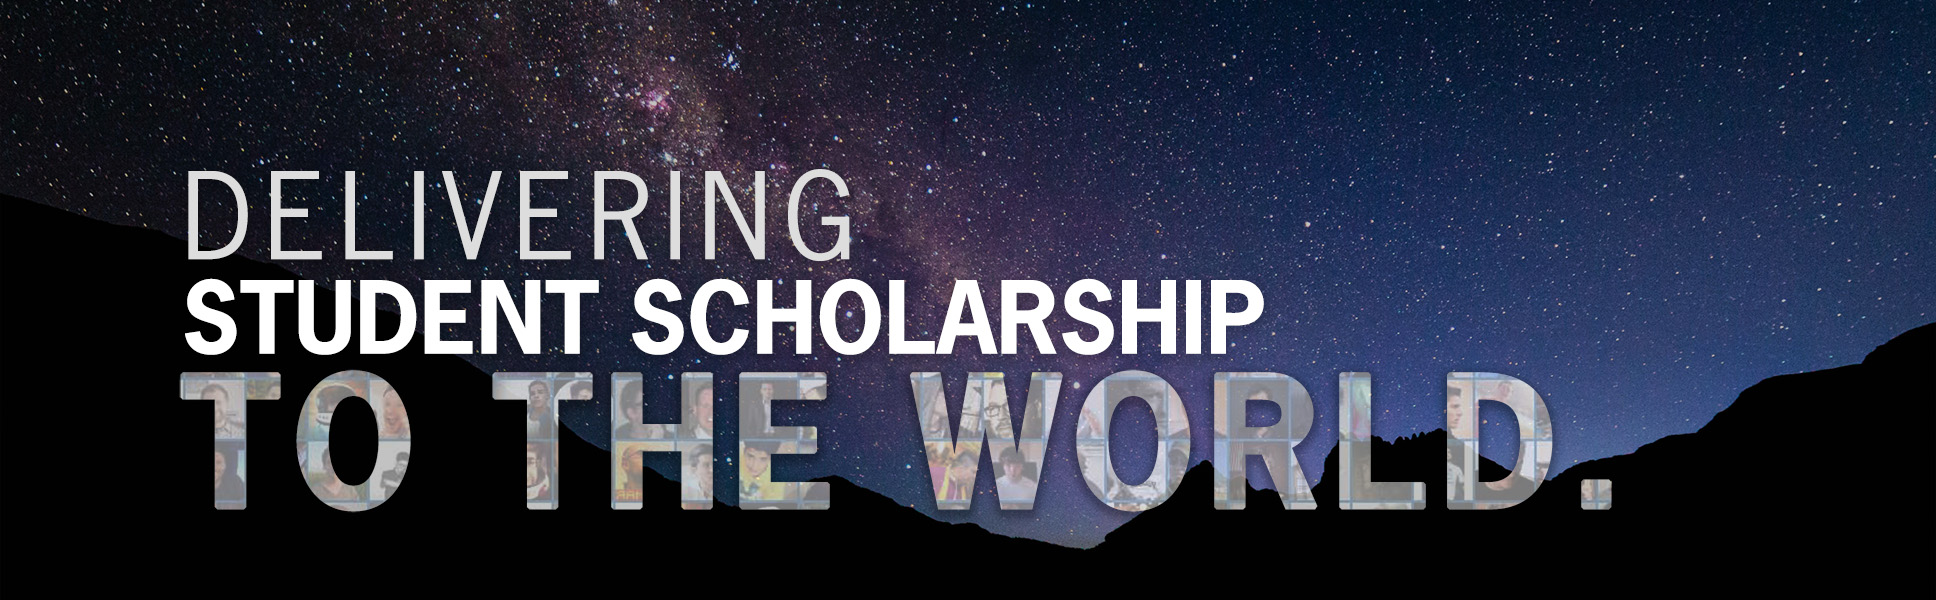 JournaQuest - Student Scholarship Delivered to the World